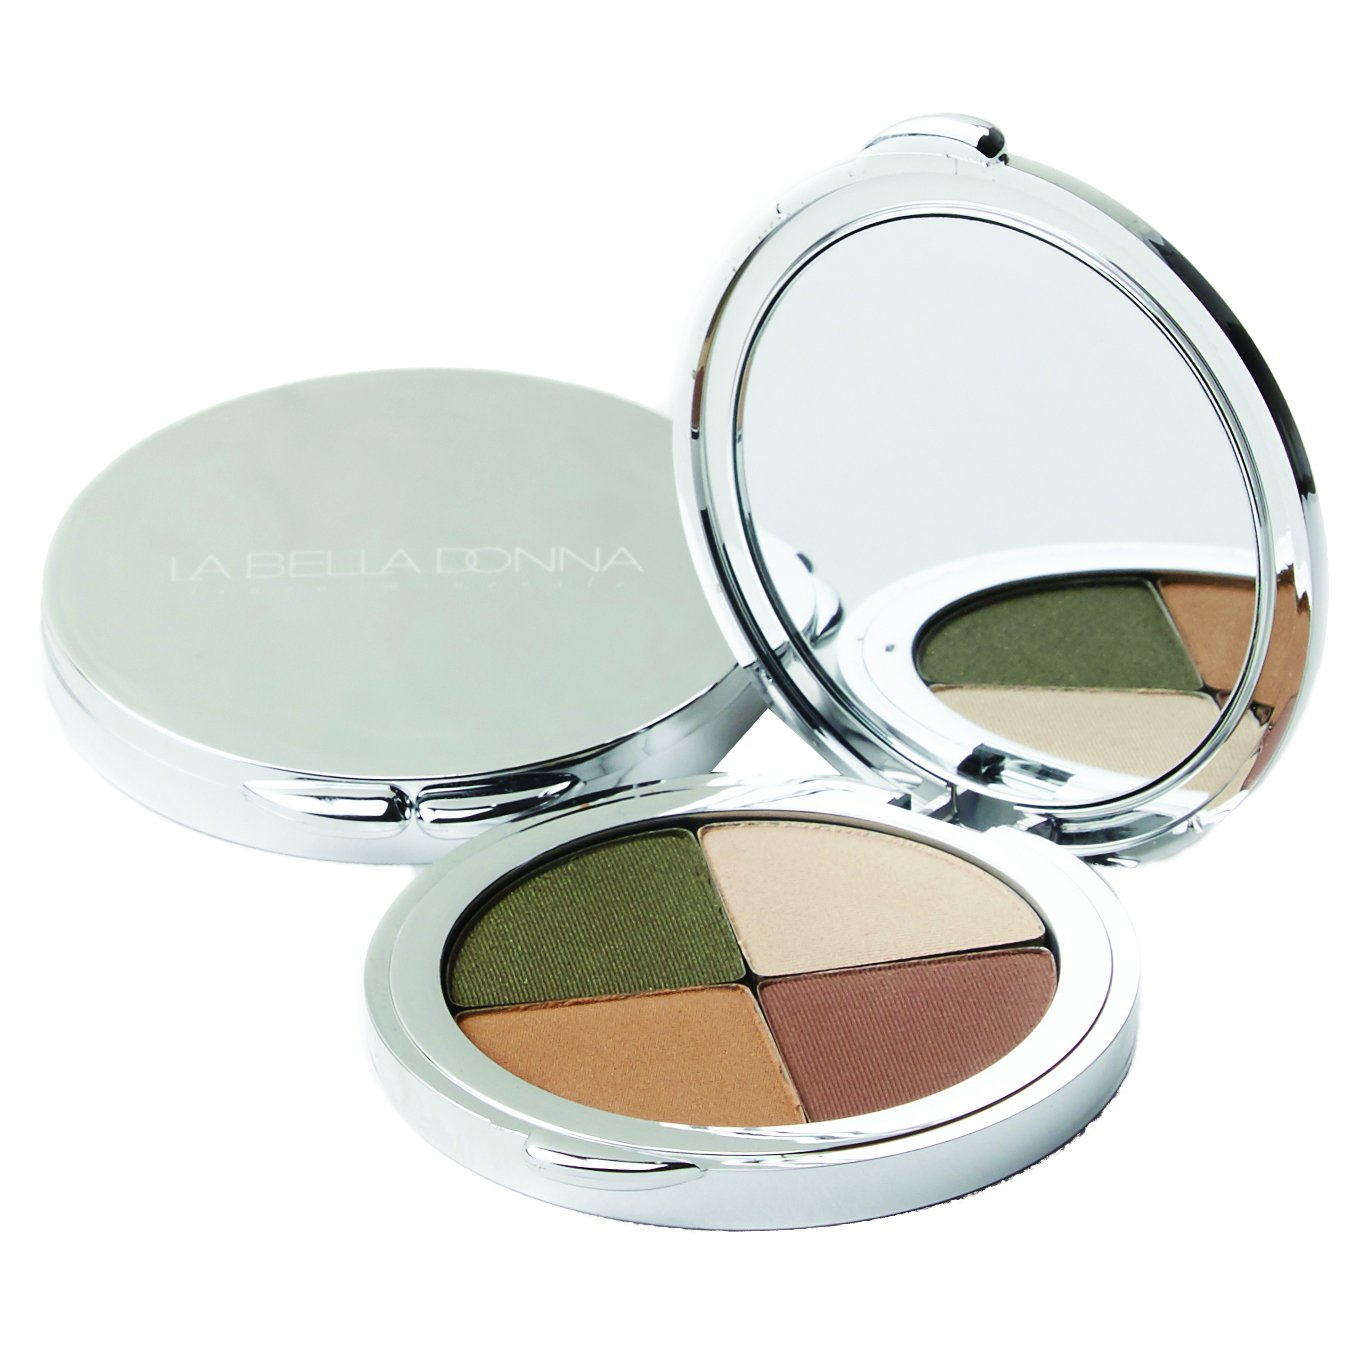 Papa Giovanni | Compressed Mineral Eye Shadow Compact Colour Collection - LA BELLA DONNA MINERALS